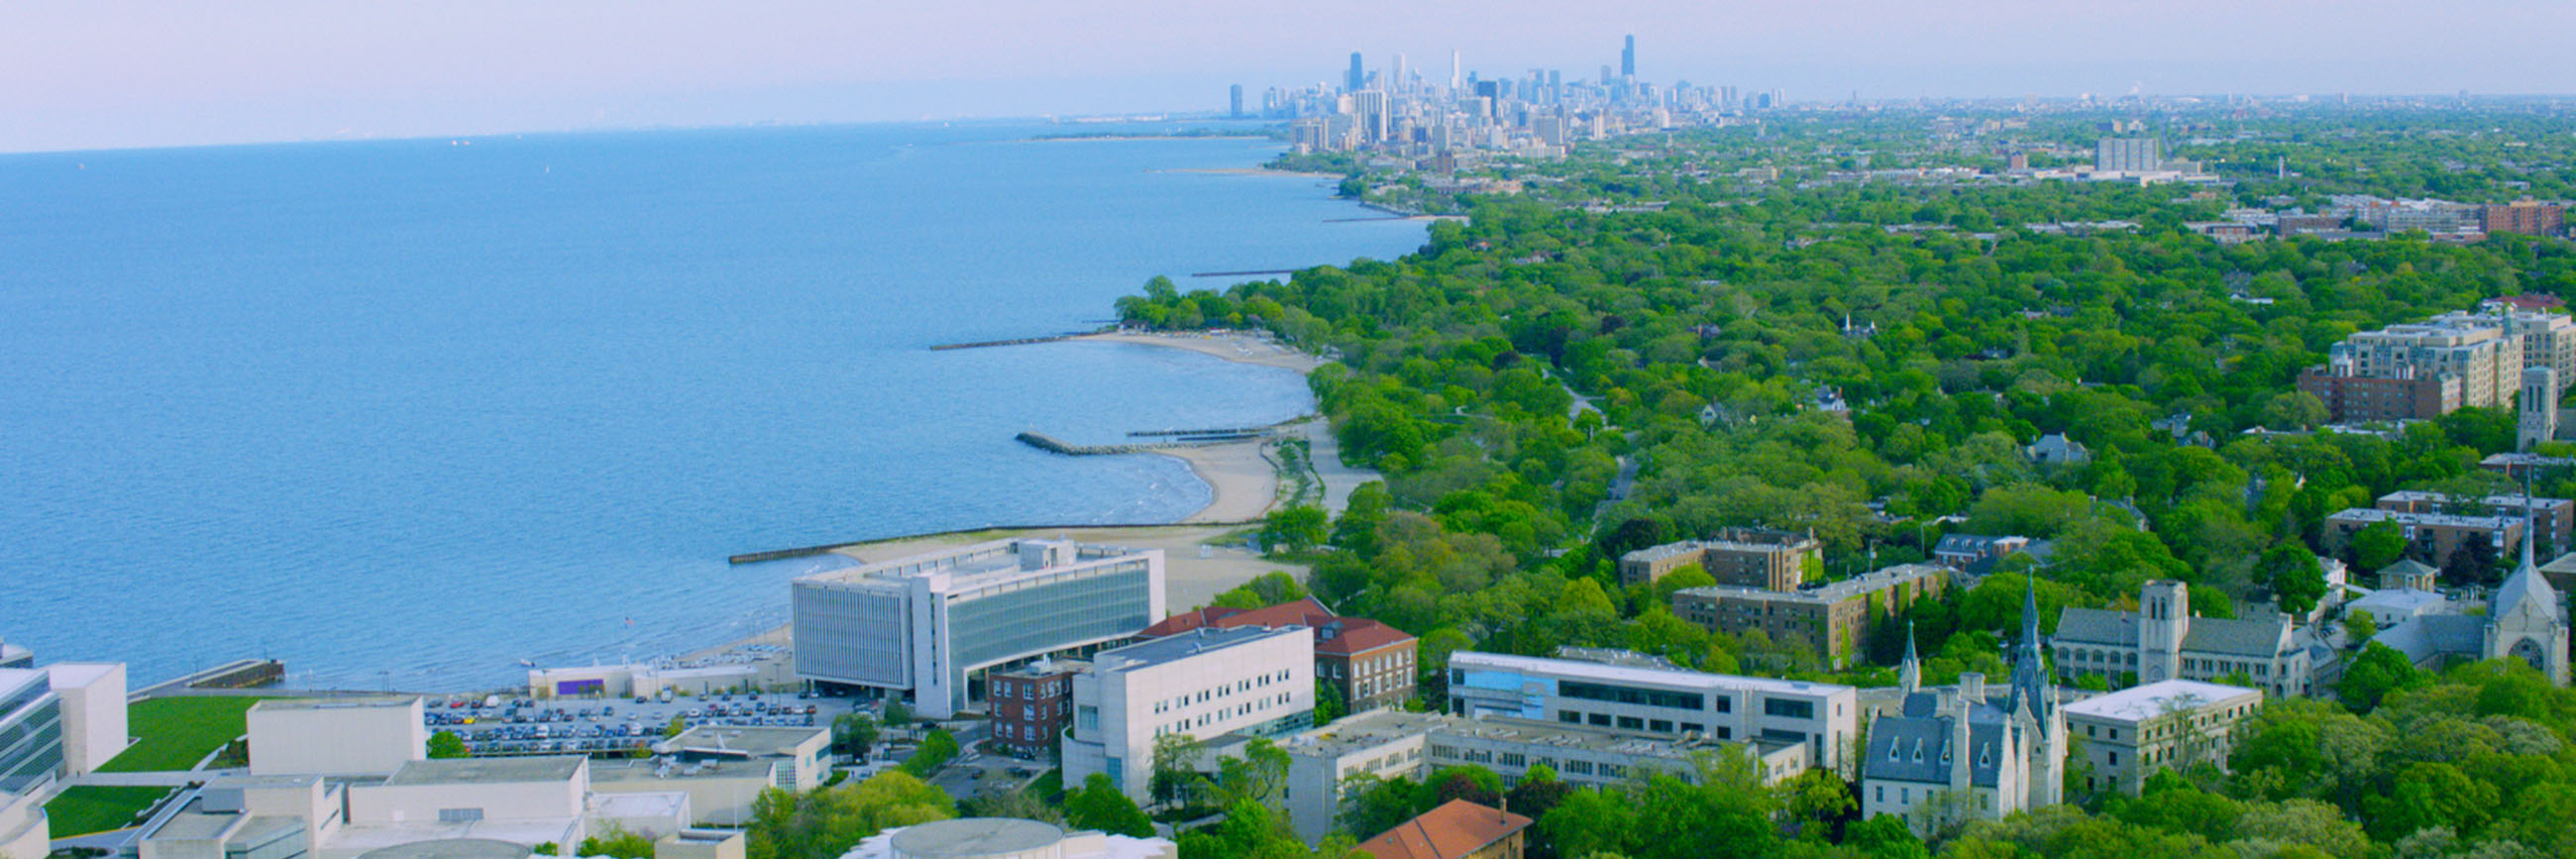 Drone photo of the Evanston campus along Lake Michigan with Chicago skyline in the background.